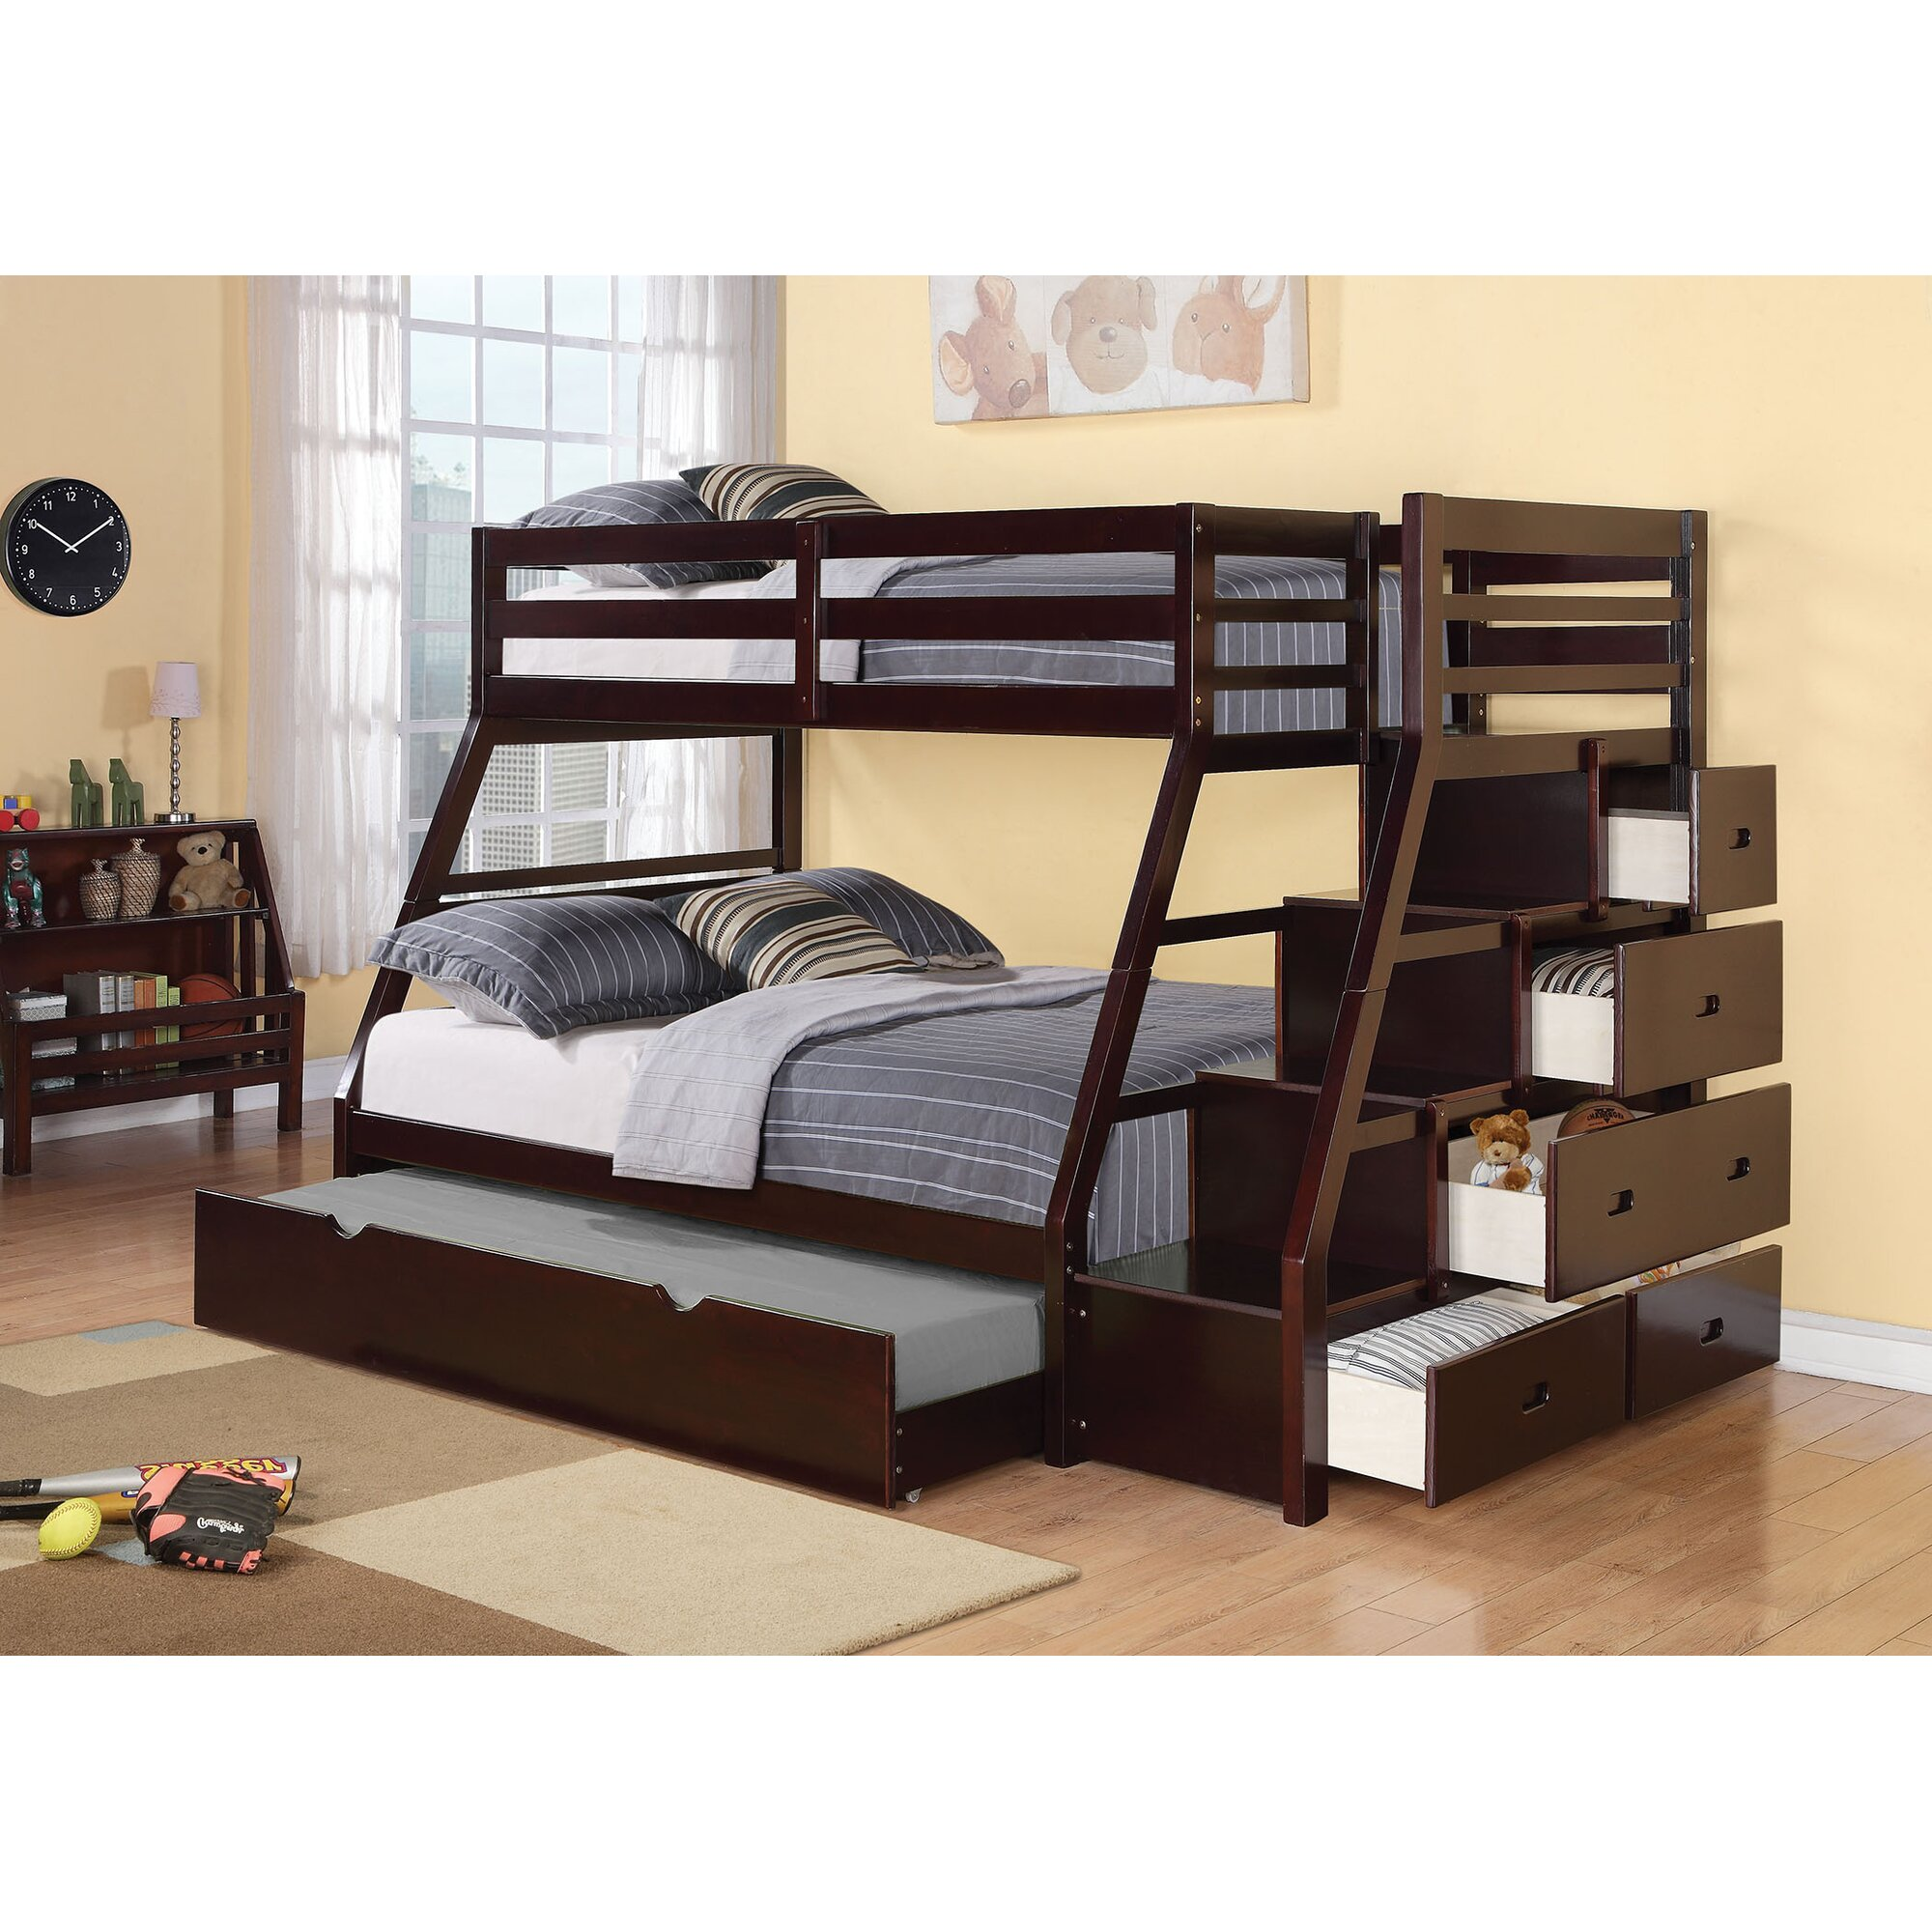 Bunk beds for adults full - Reece Twin Over Full Bunk Bed With Storage Ladder And Trundle